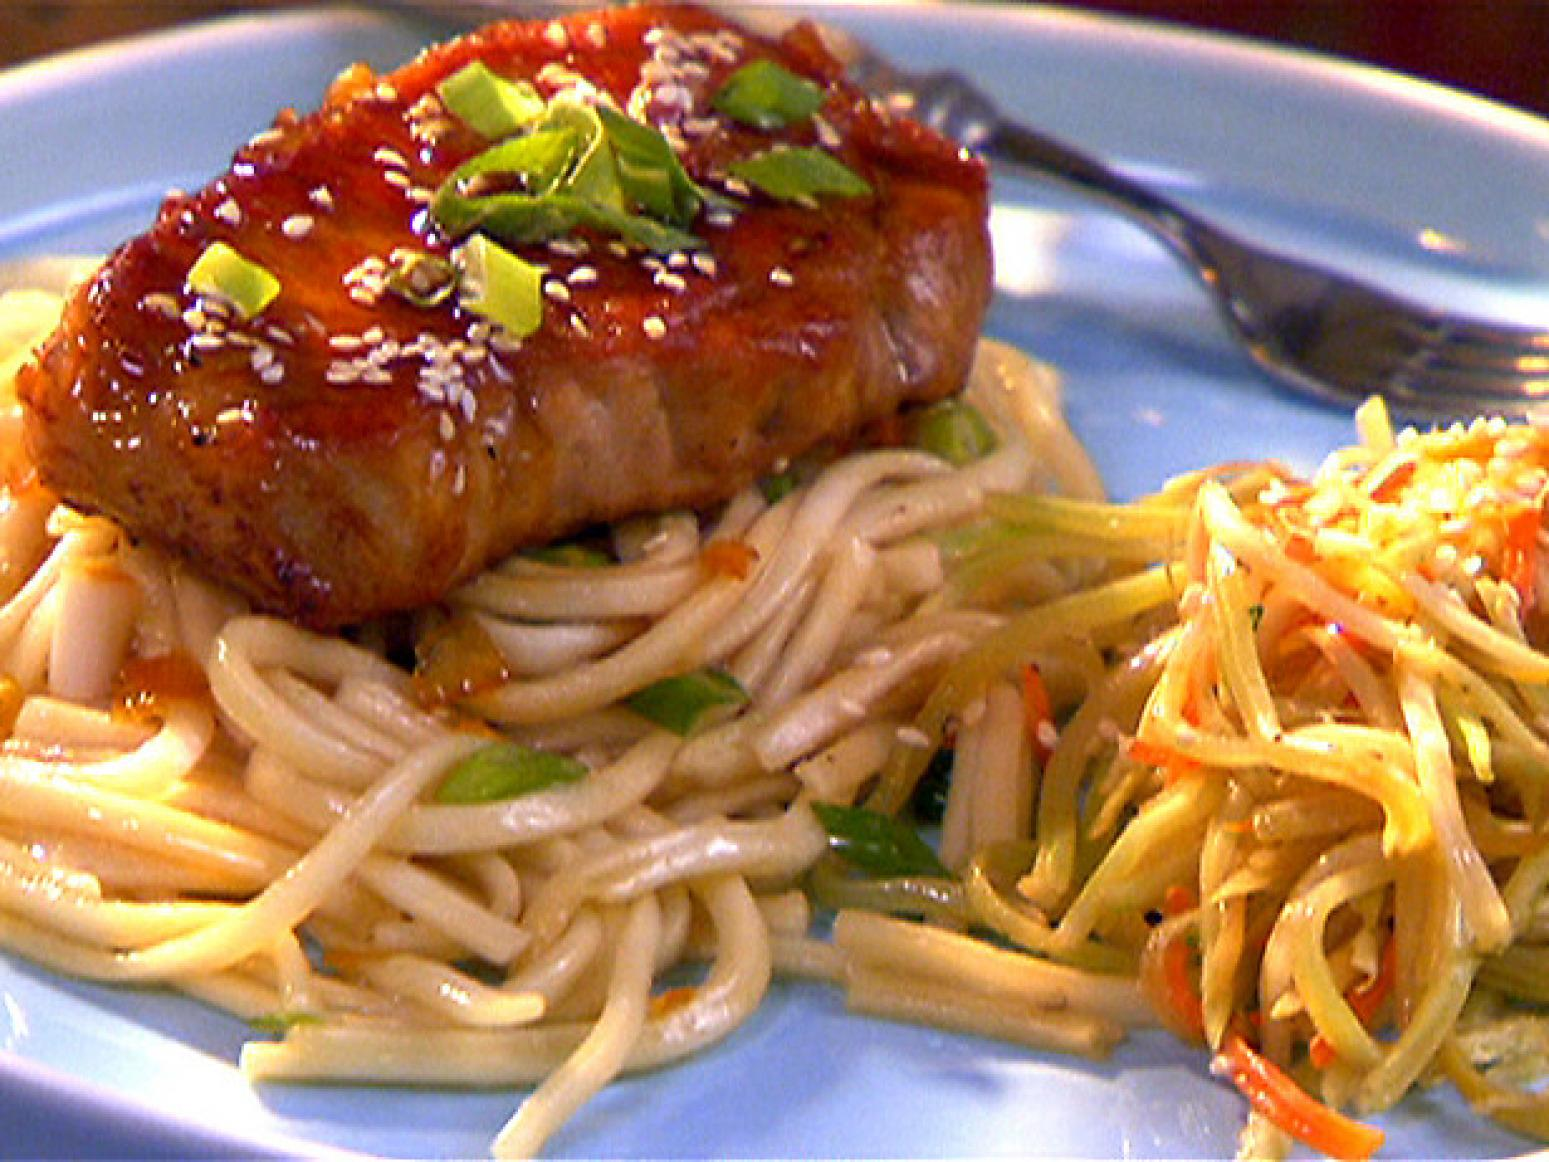 Pork Chops with Orange Soy Glaze and Udon Noodles Recipe